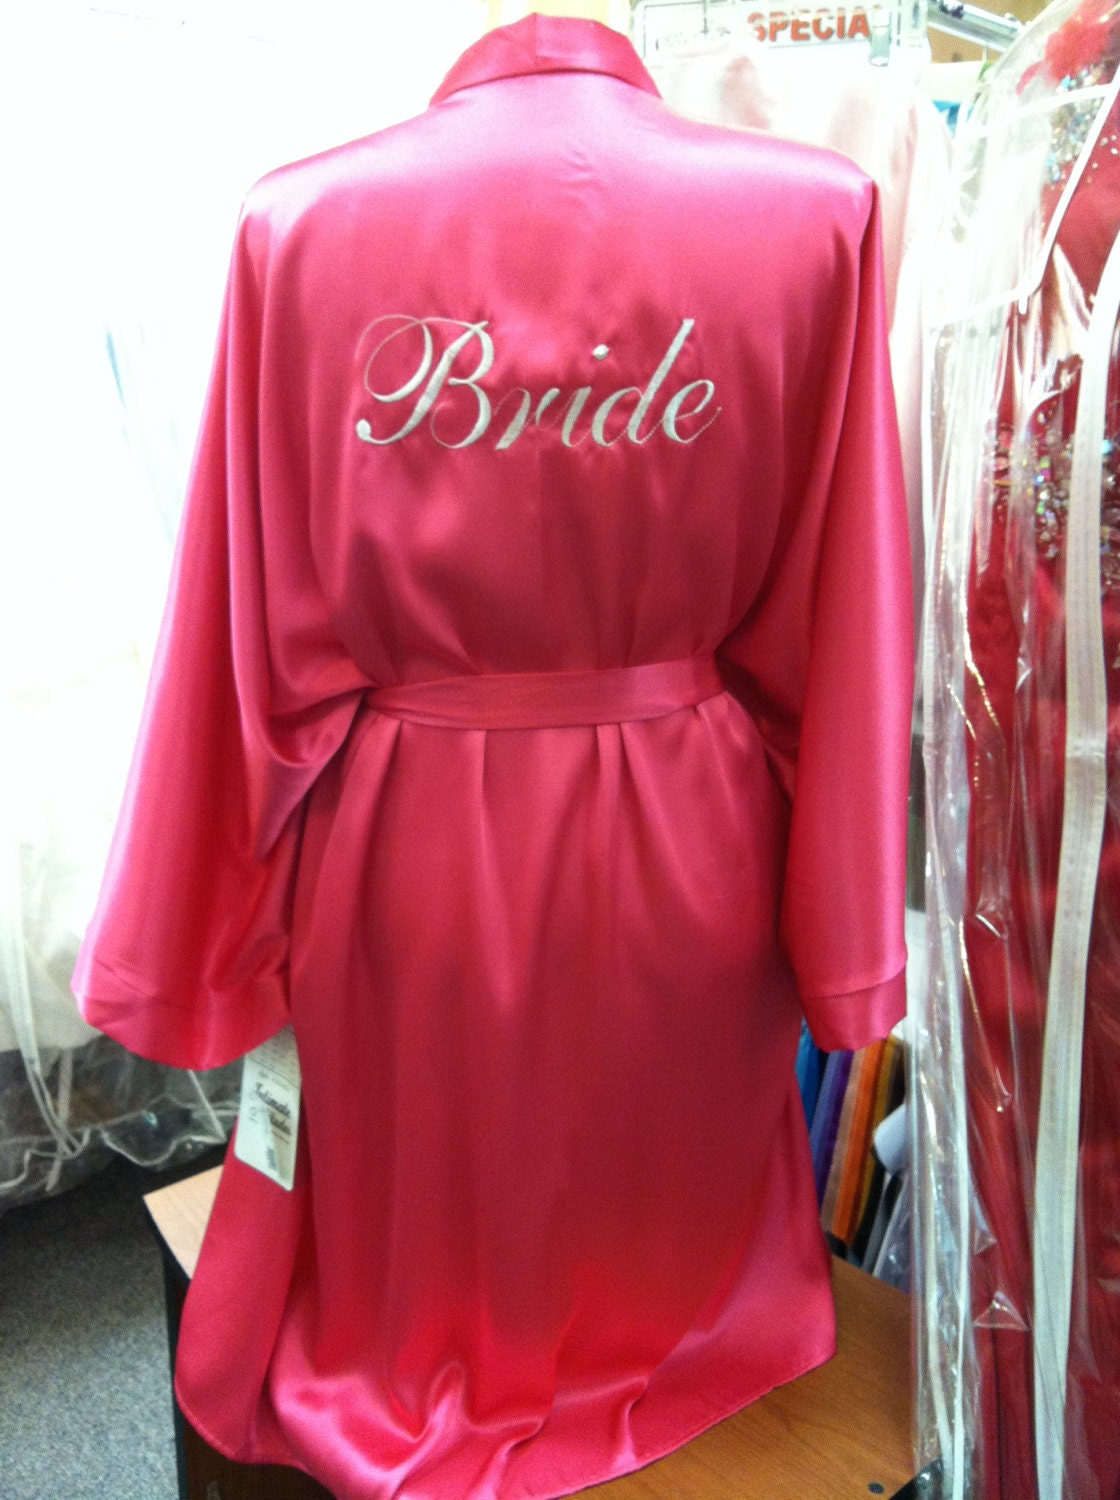 Wedding Bride Robe bride robe pink plus sized 1x2x